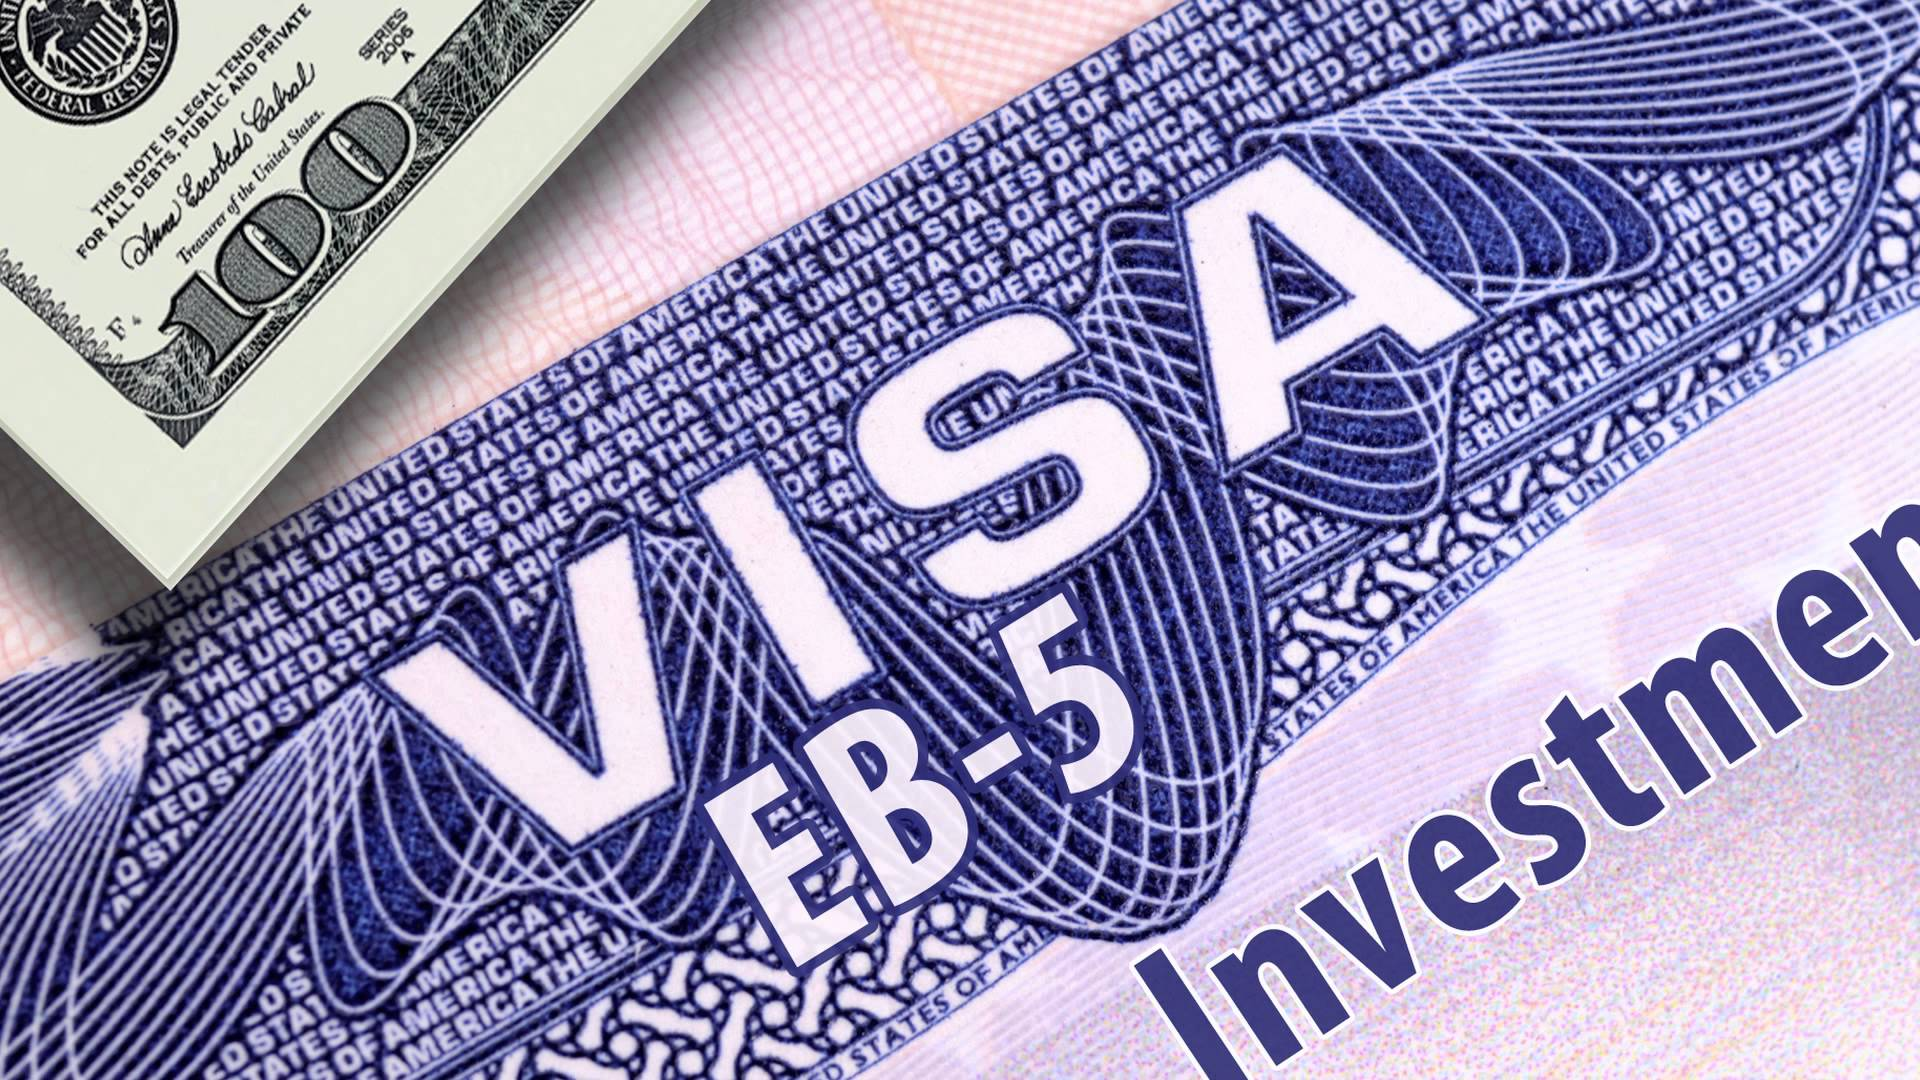 eb5_visa_usa-interimm